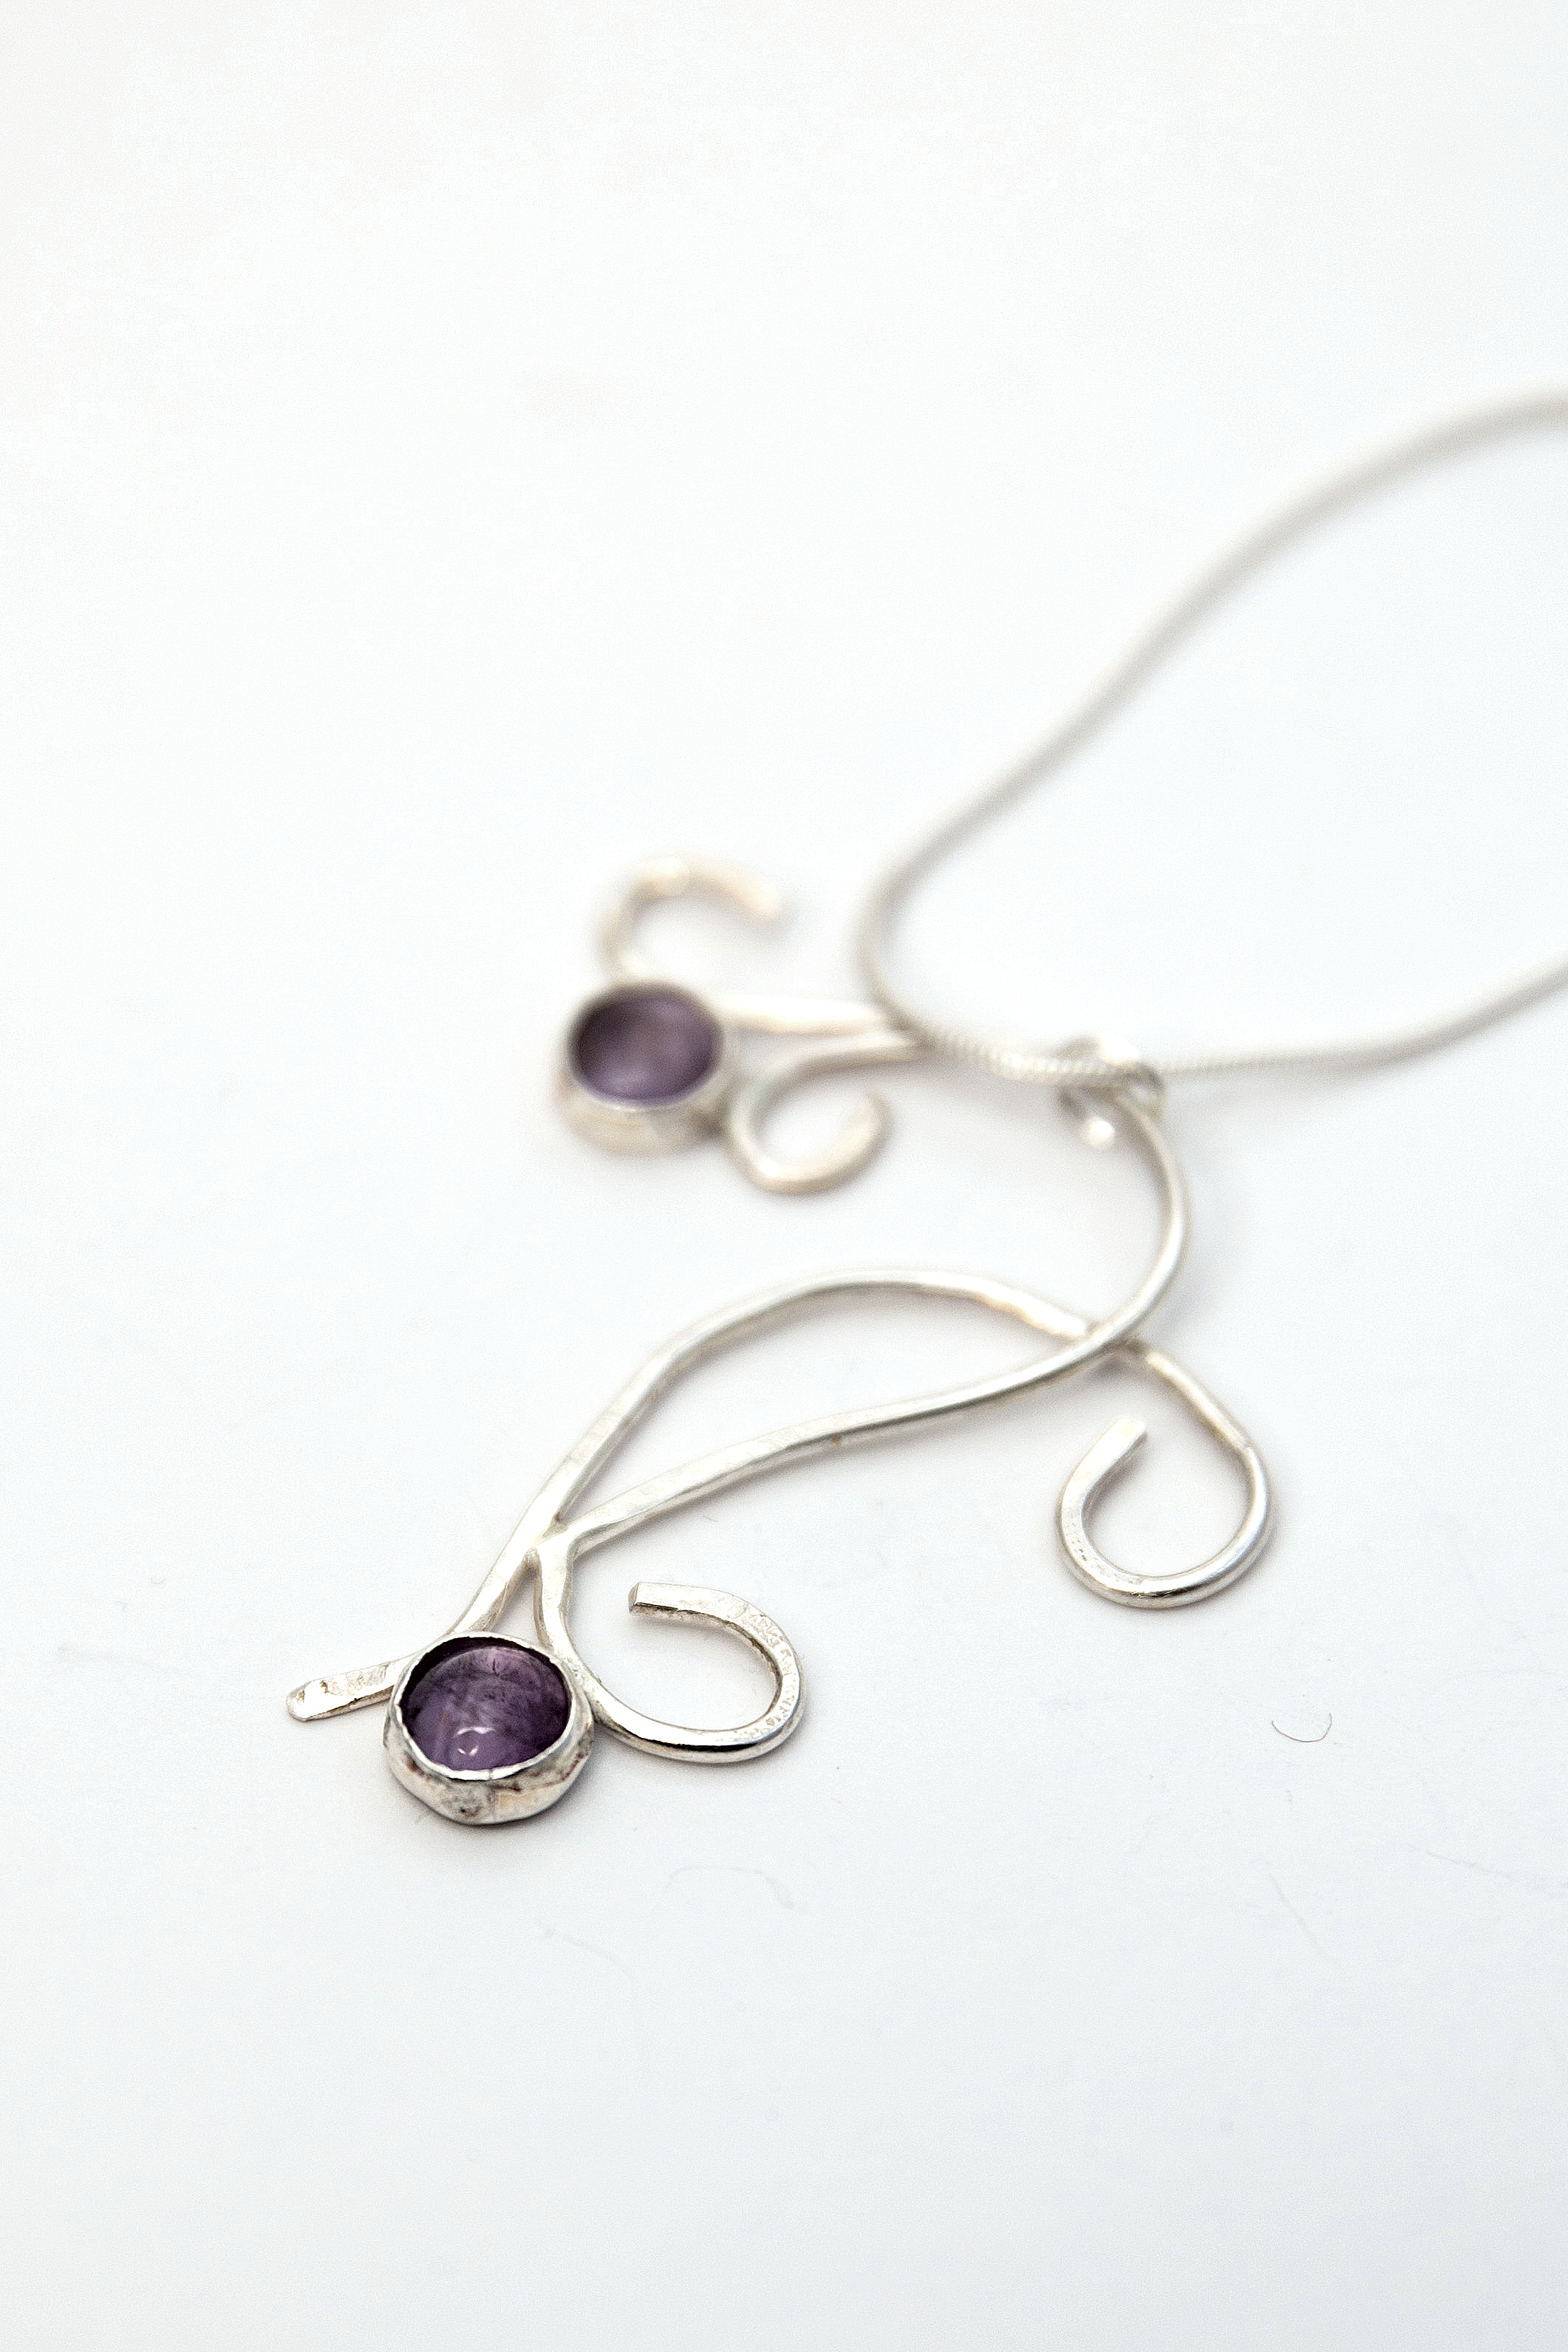 Amethyst tendril pendant 1